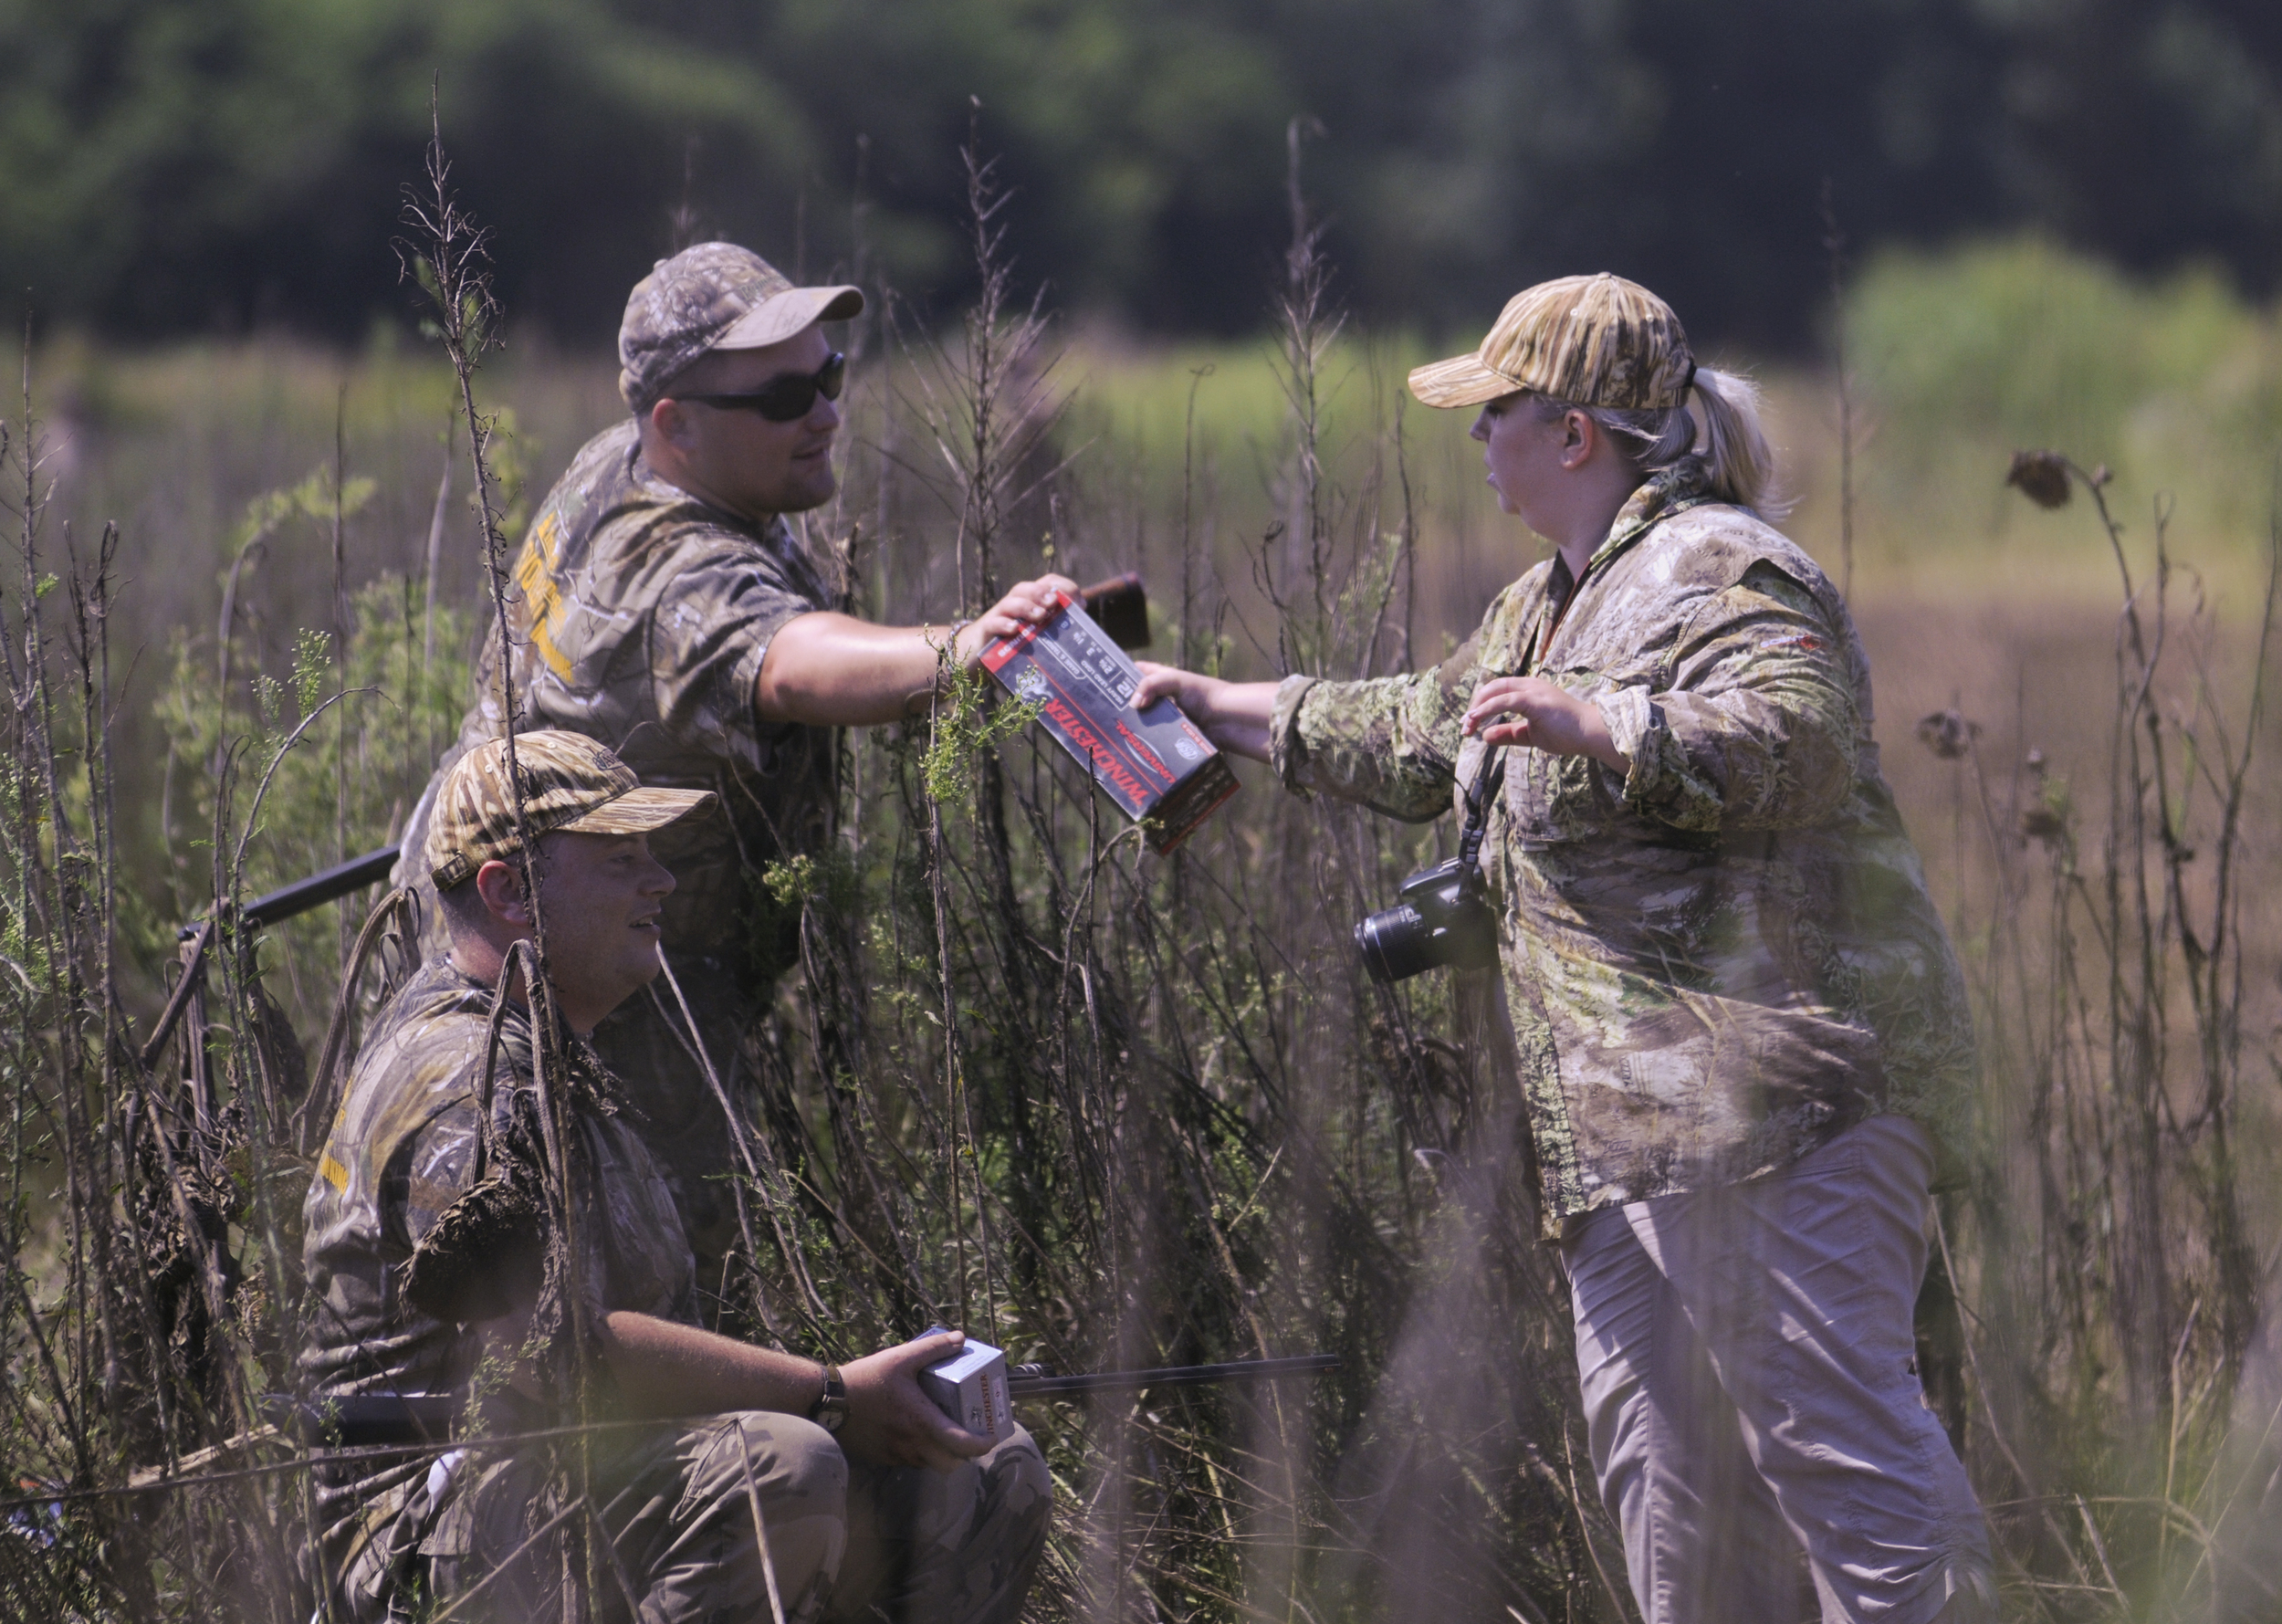 Katrina Coffelt hands shells to Kris Boswell during the opening day of dove season. Coffelt is one of the many volunteers who helped make the weekend possible.